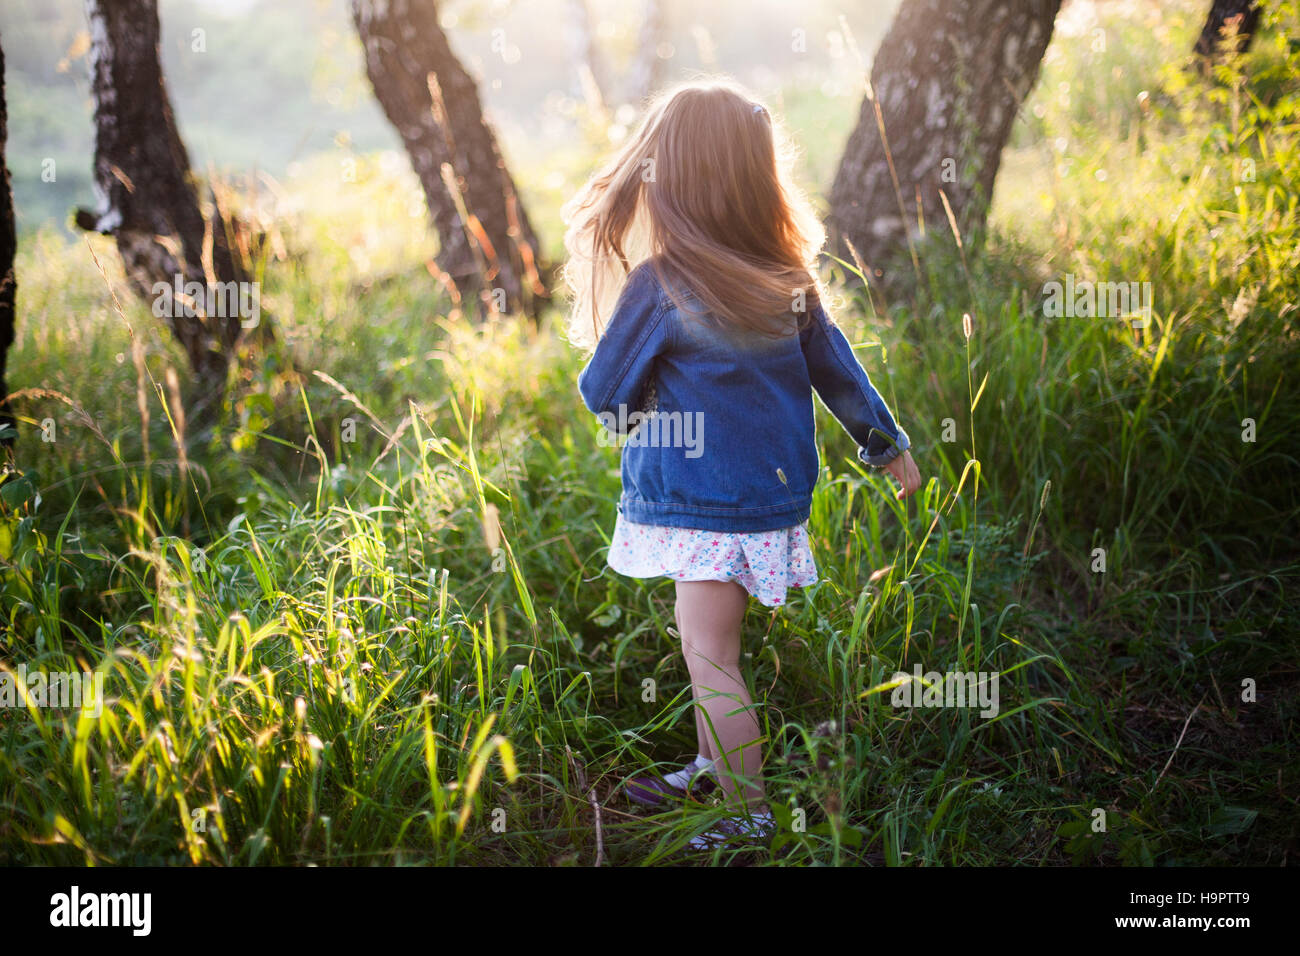 Little girl with long hair running, meadow, sunset - Stock Image